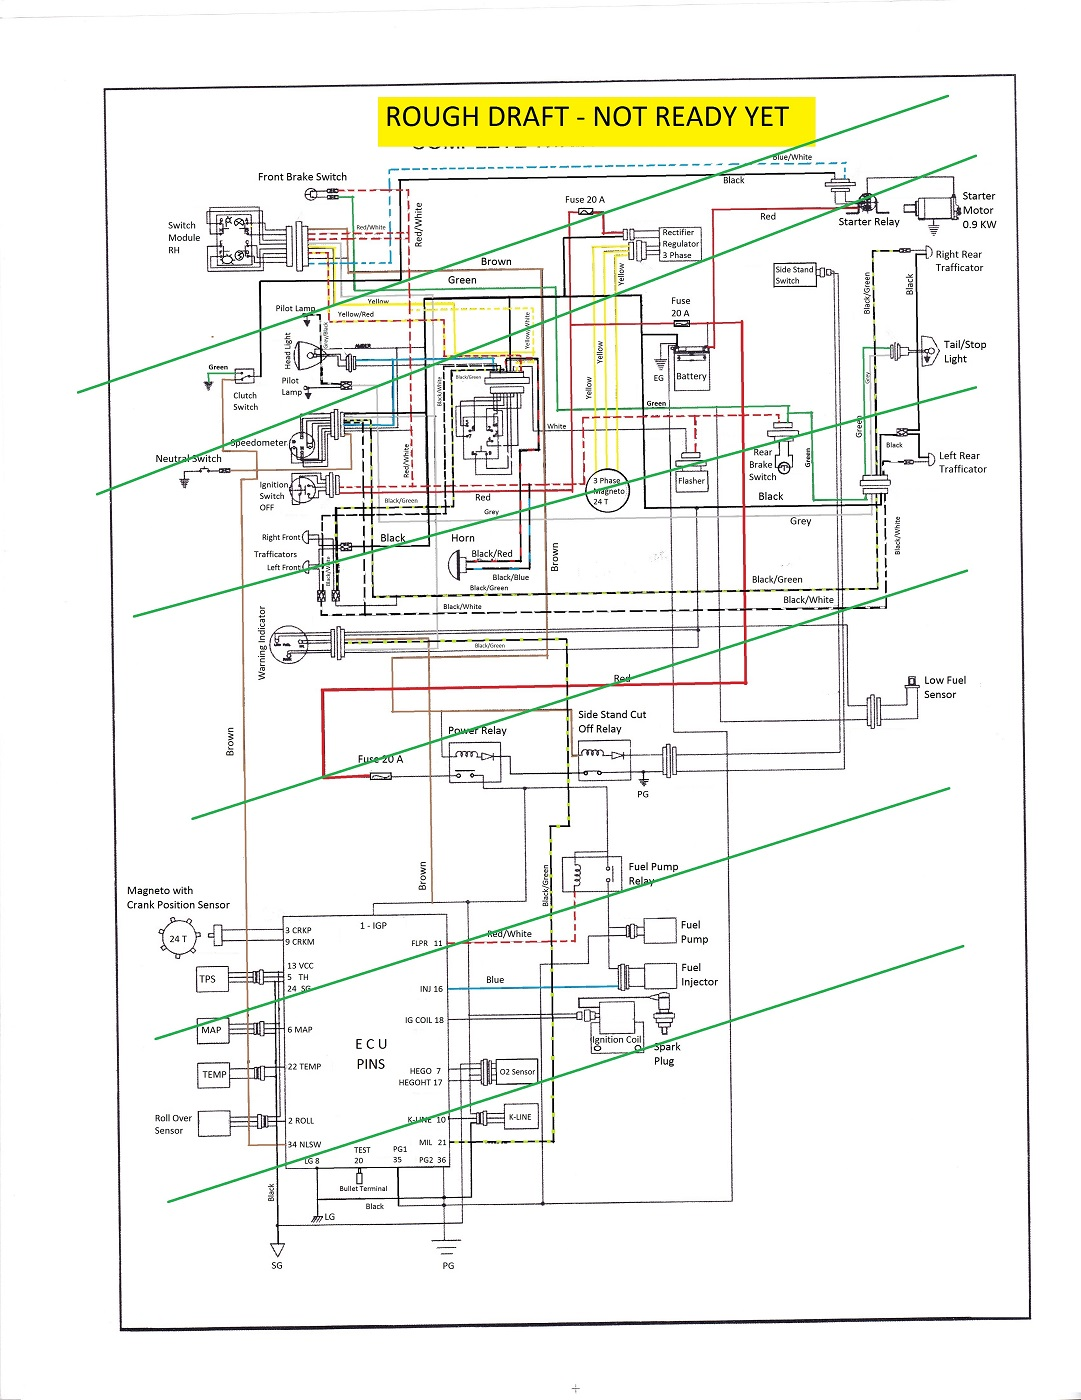 The real EFI Wiring Diagram – Royal Enfield Wiring Diagram